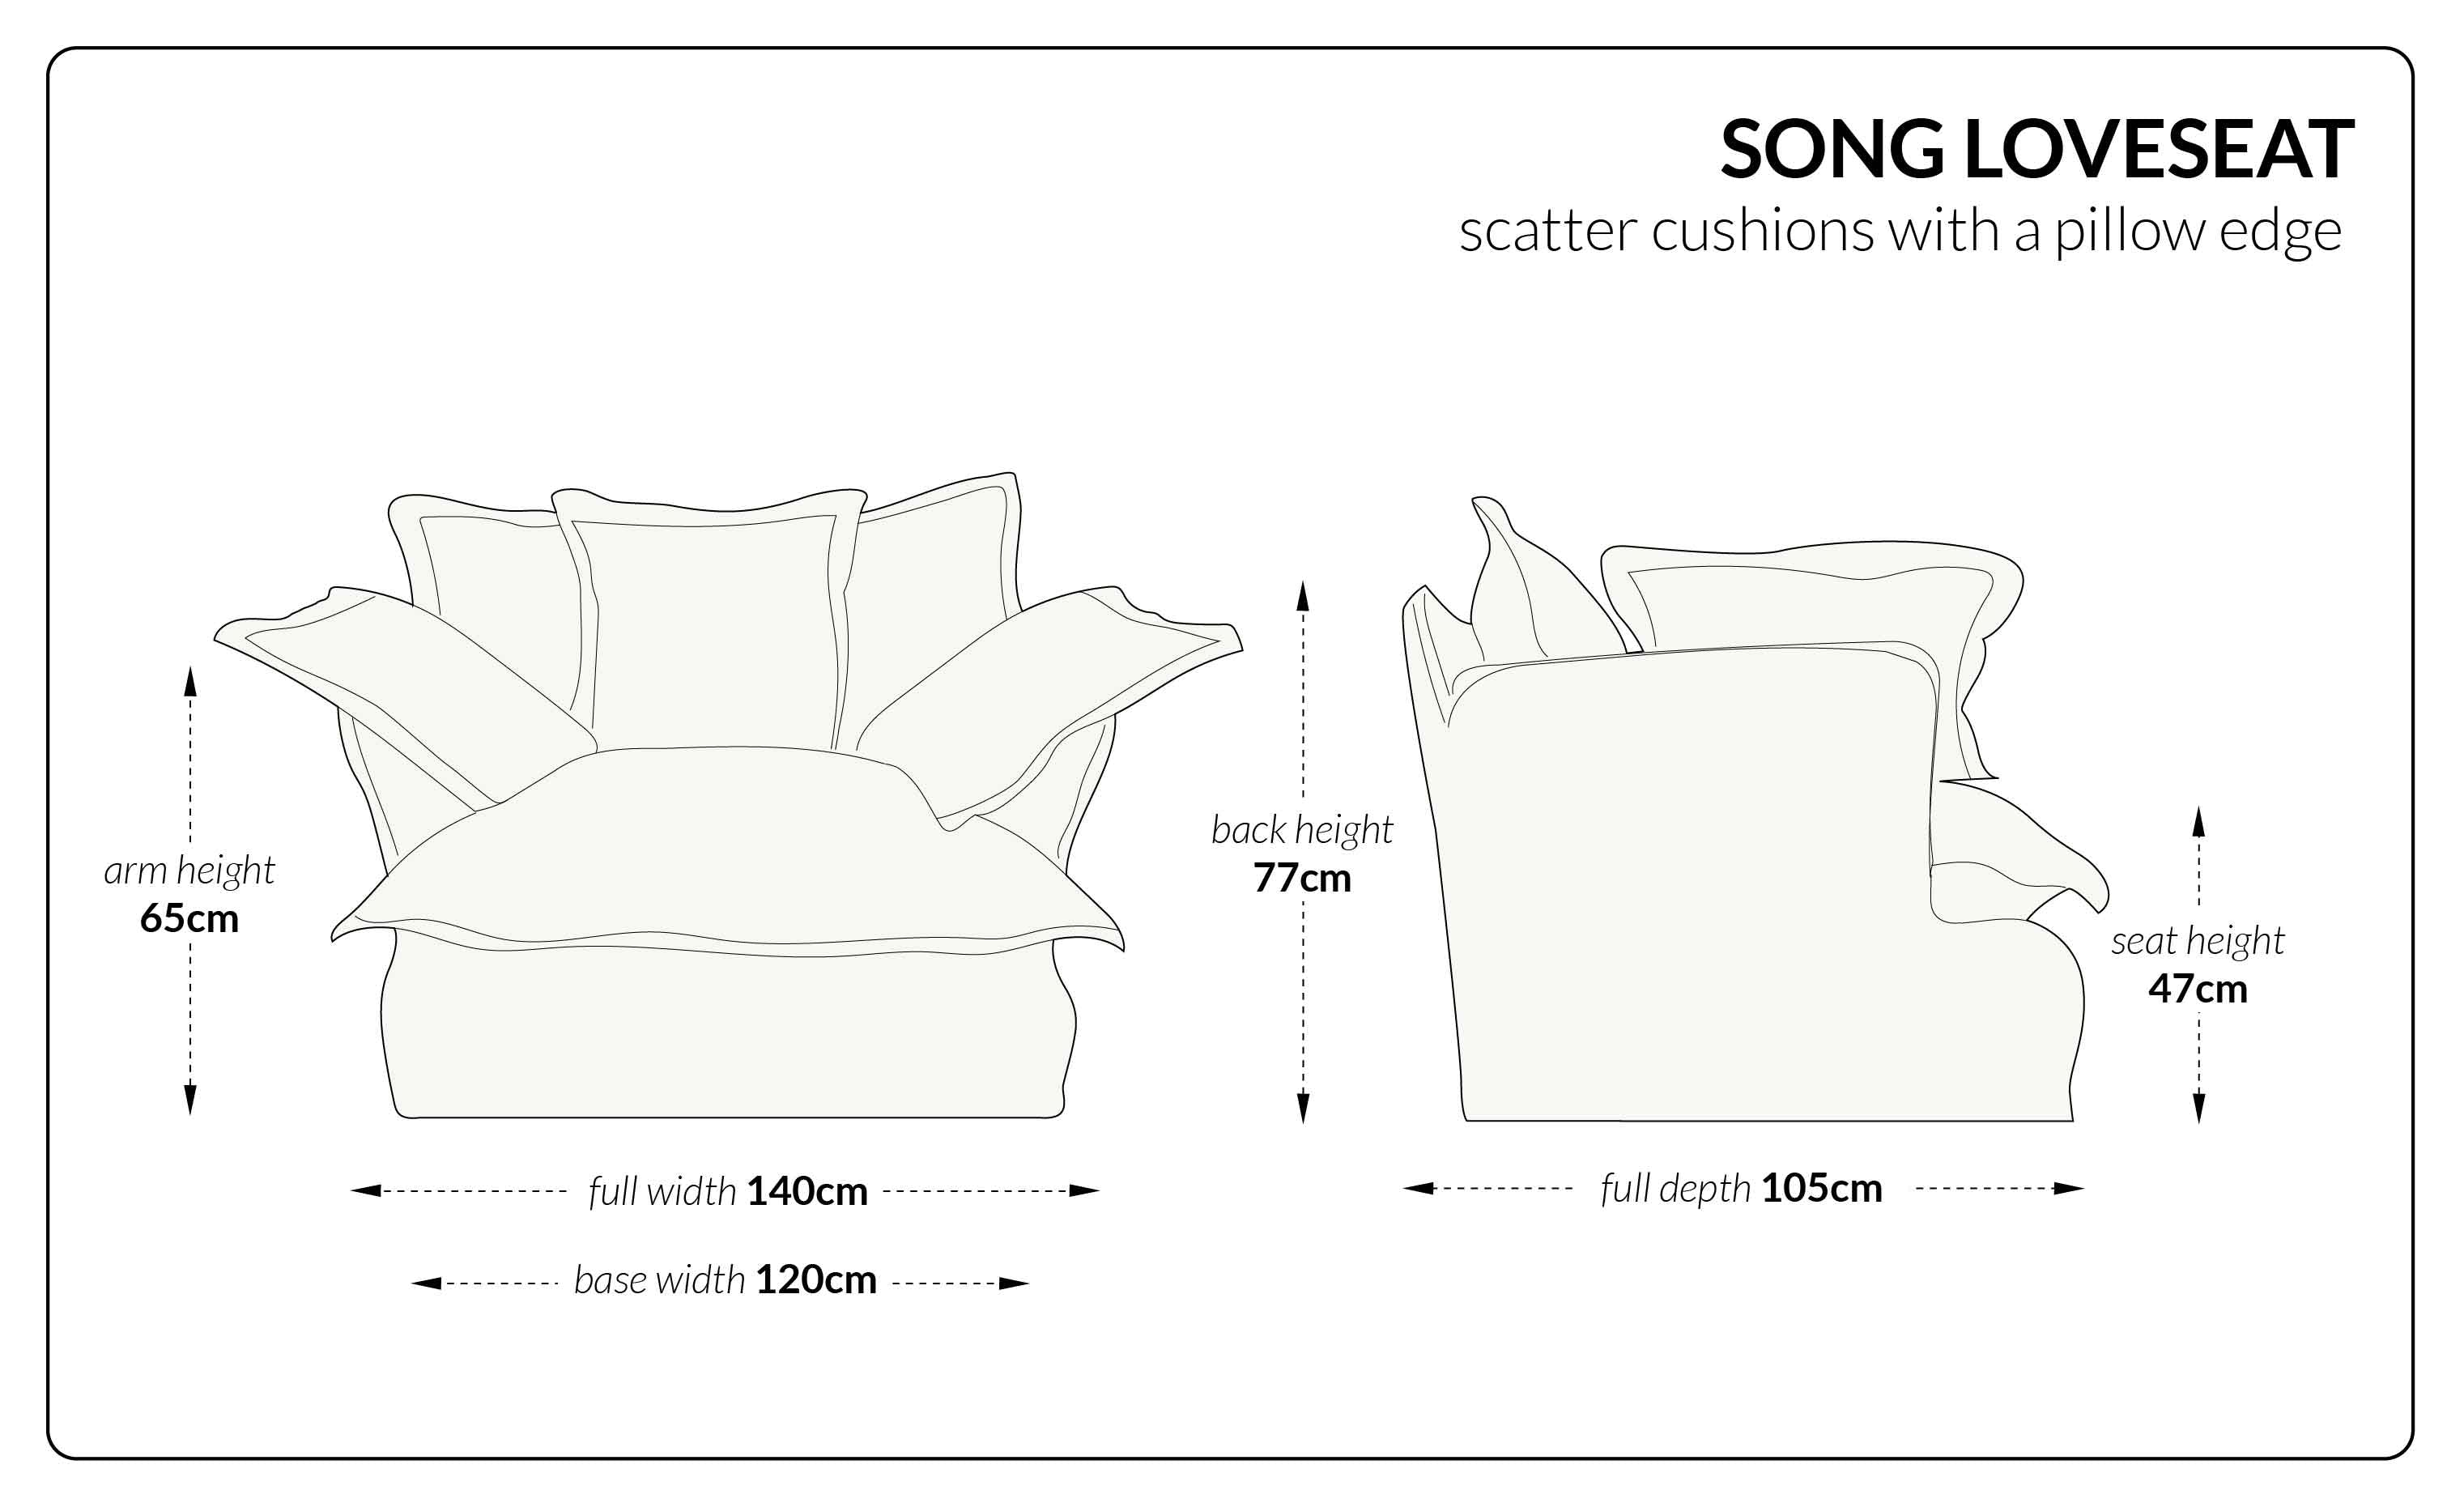 Song Loveseat scatter